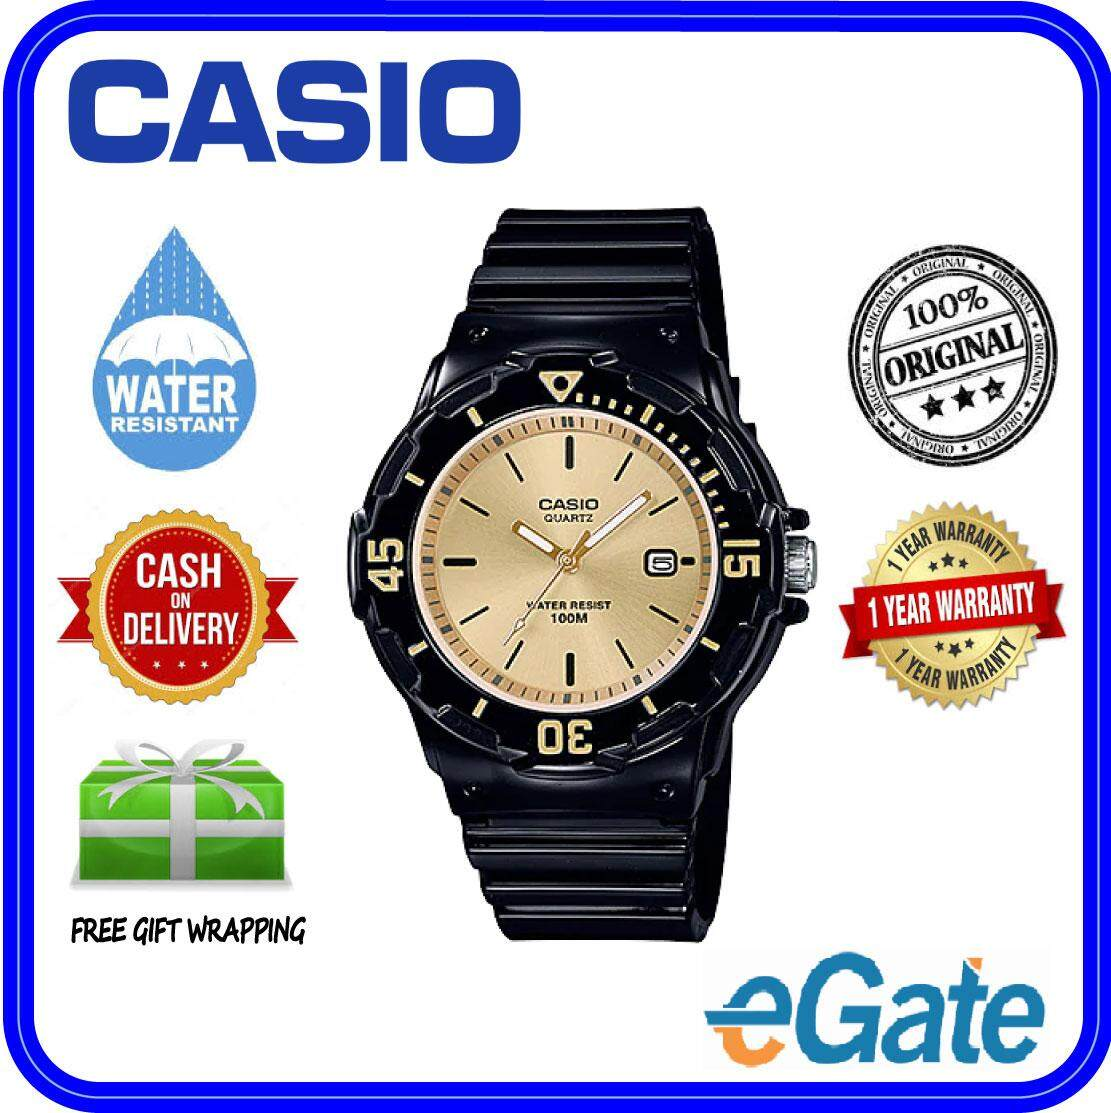 (2 YEARS WARRANTY) Casio LRW-200H-9EV Analog Kids & Ladies Date Functioning Classic Black Resin Band Original Casual Watch (LRW-200H) Malaysia